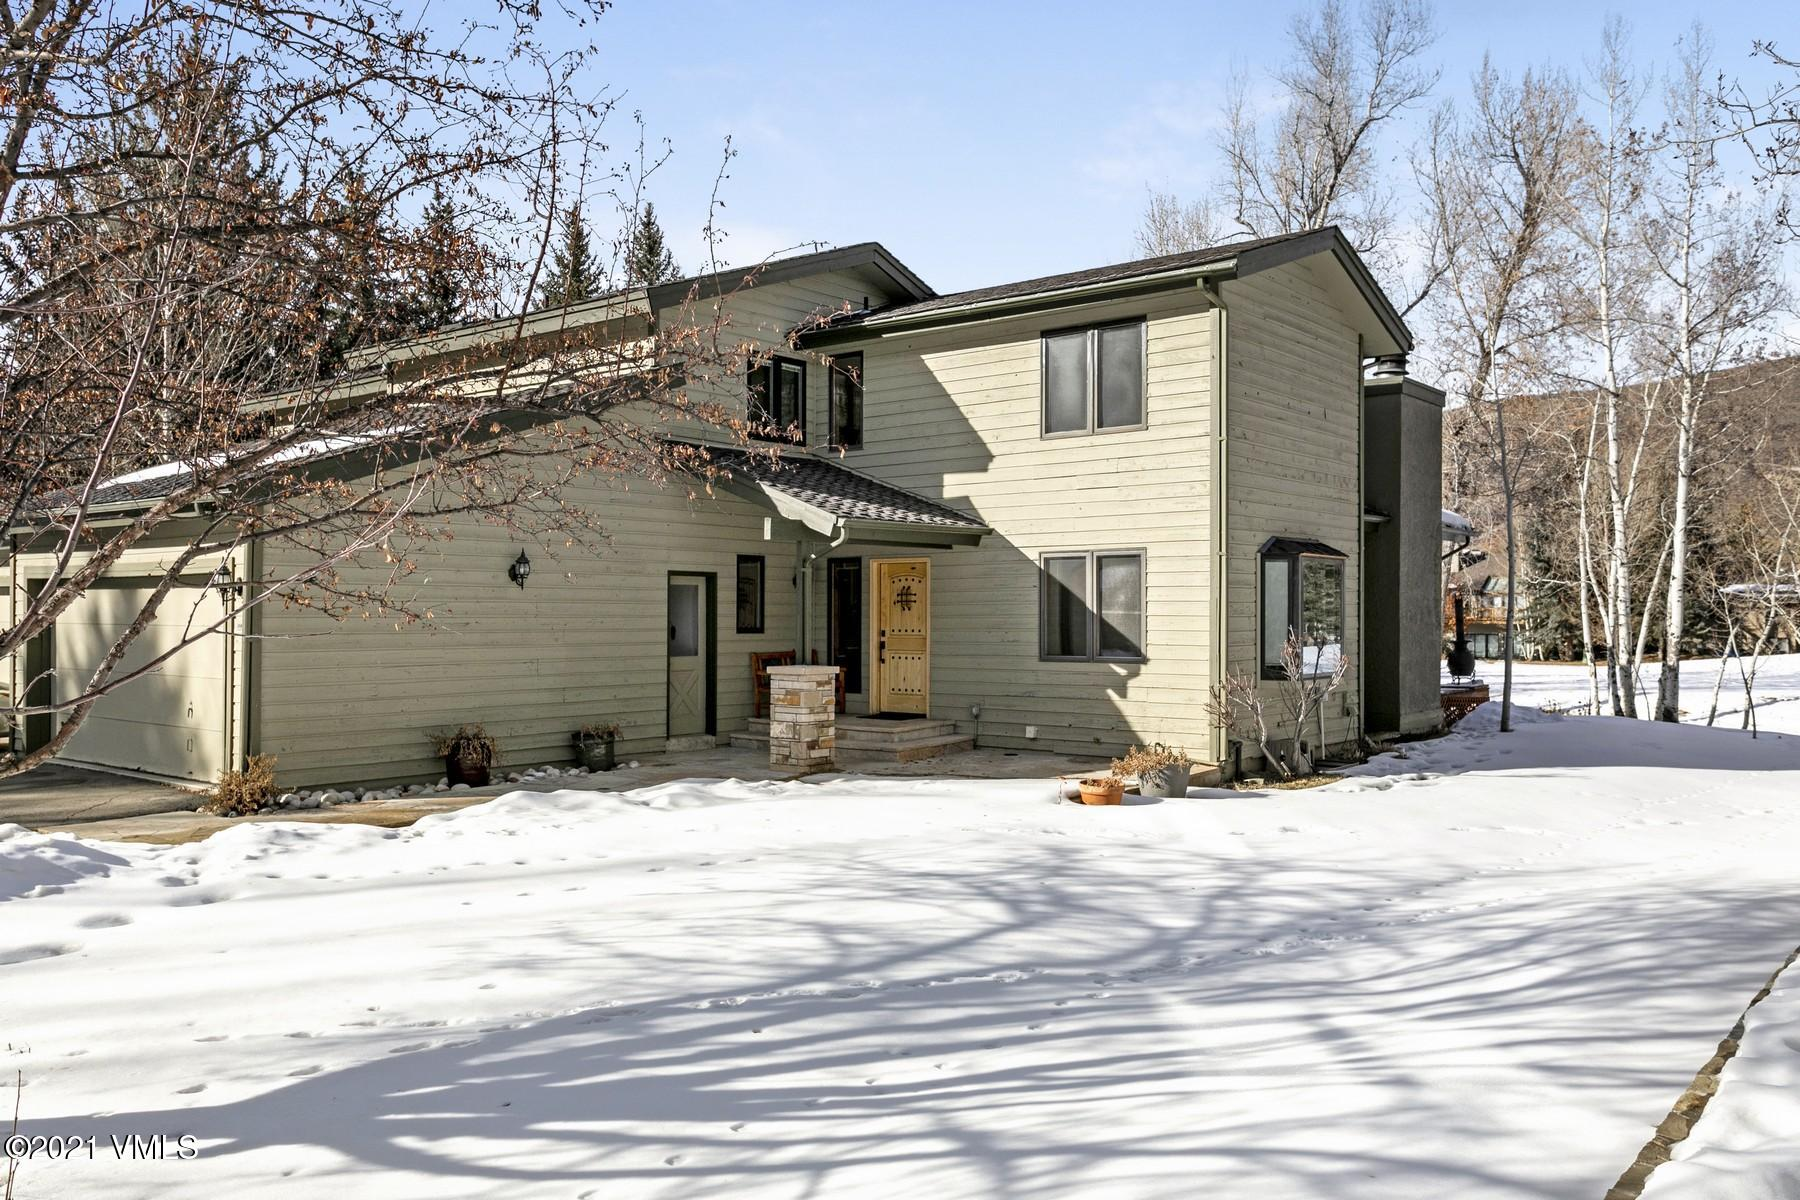 Immaculately maintained, this beautifully-appointed duplex is situated in a prized alpine location, backing to stone creek and on the 6th fairway of the EagleVail golf course. Boasting nearly 3,000 square feet over 3 levels, this property features 3-bedrooms plus a main level office, 4-bathrooms, vaulted ceilings, hardwood floors, a lower-level family room, wood-burning fireplace, gas stove, air conditioning in the master bedroom, spectacular outdoor space, and much more. Just a ten minute drive from Vail and five minutes from Beaver Creek, EagleVail is a popular mountain community in the center of everything. Extensive amenities add to the warmth of the neighborhood with the EagleVail Golf Club, Willow Creek Par 3, Pool, numerous Parks, Tennis/Pickle-ball Courts, the Pavilion, and the renowned EagleVail Trail. It is rare to have such a convenient and accessible mountain property in a generally flat location on the valley floor, with an abundance of outdoor recreation at your fingertips. Please feel free to visit mls.573StoneCreekDrive.com for more information.